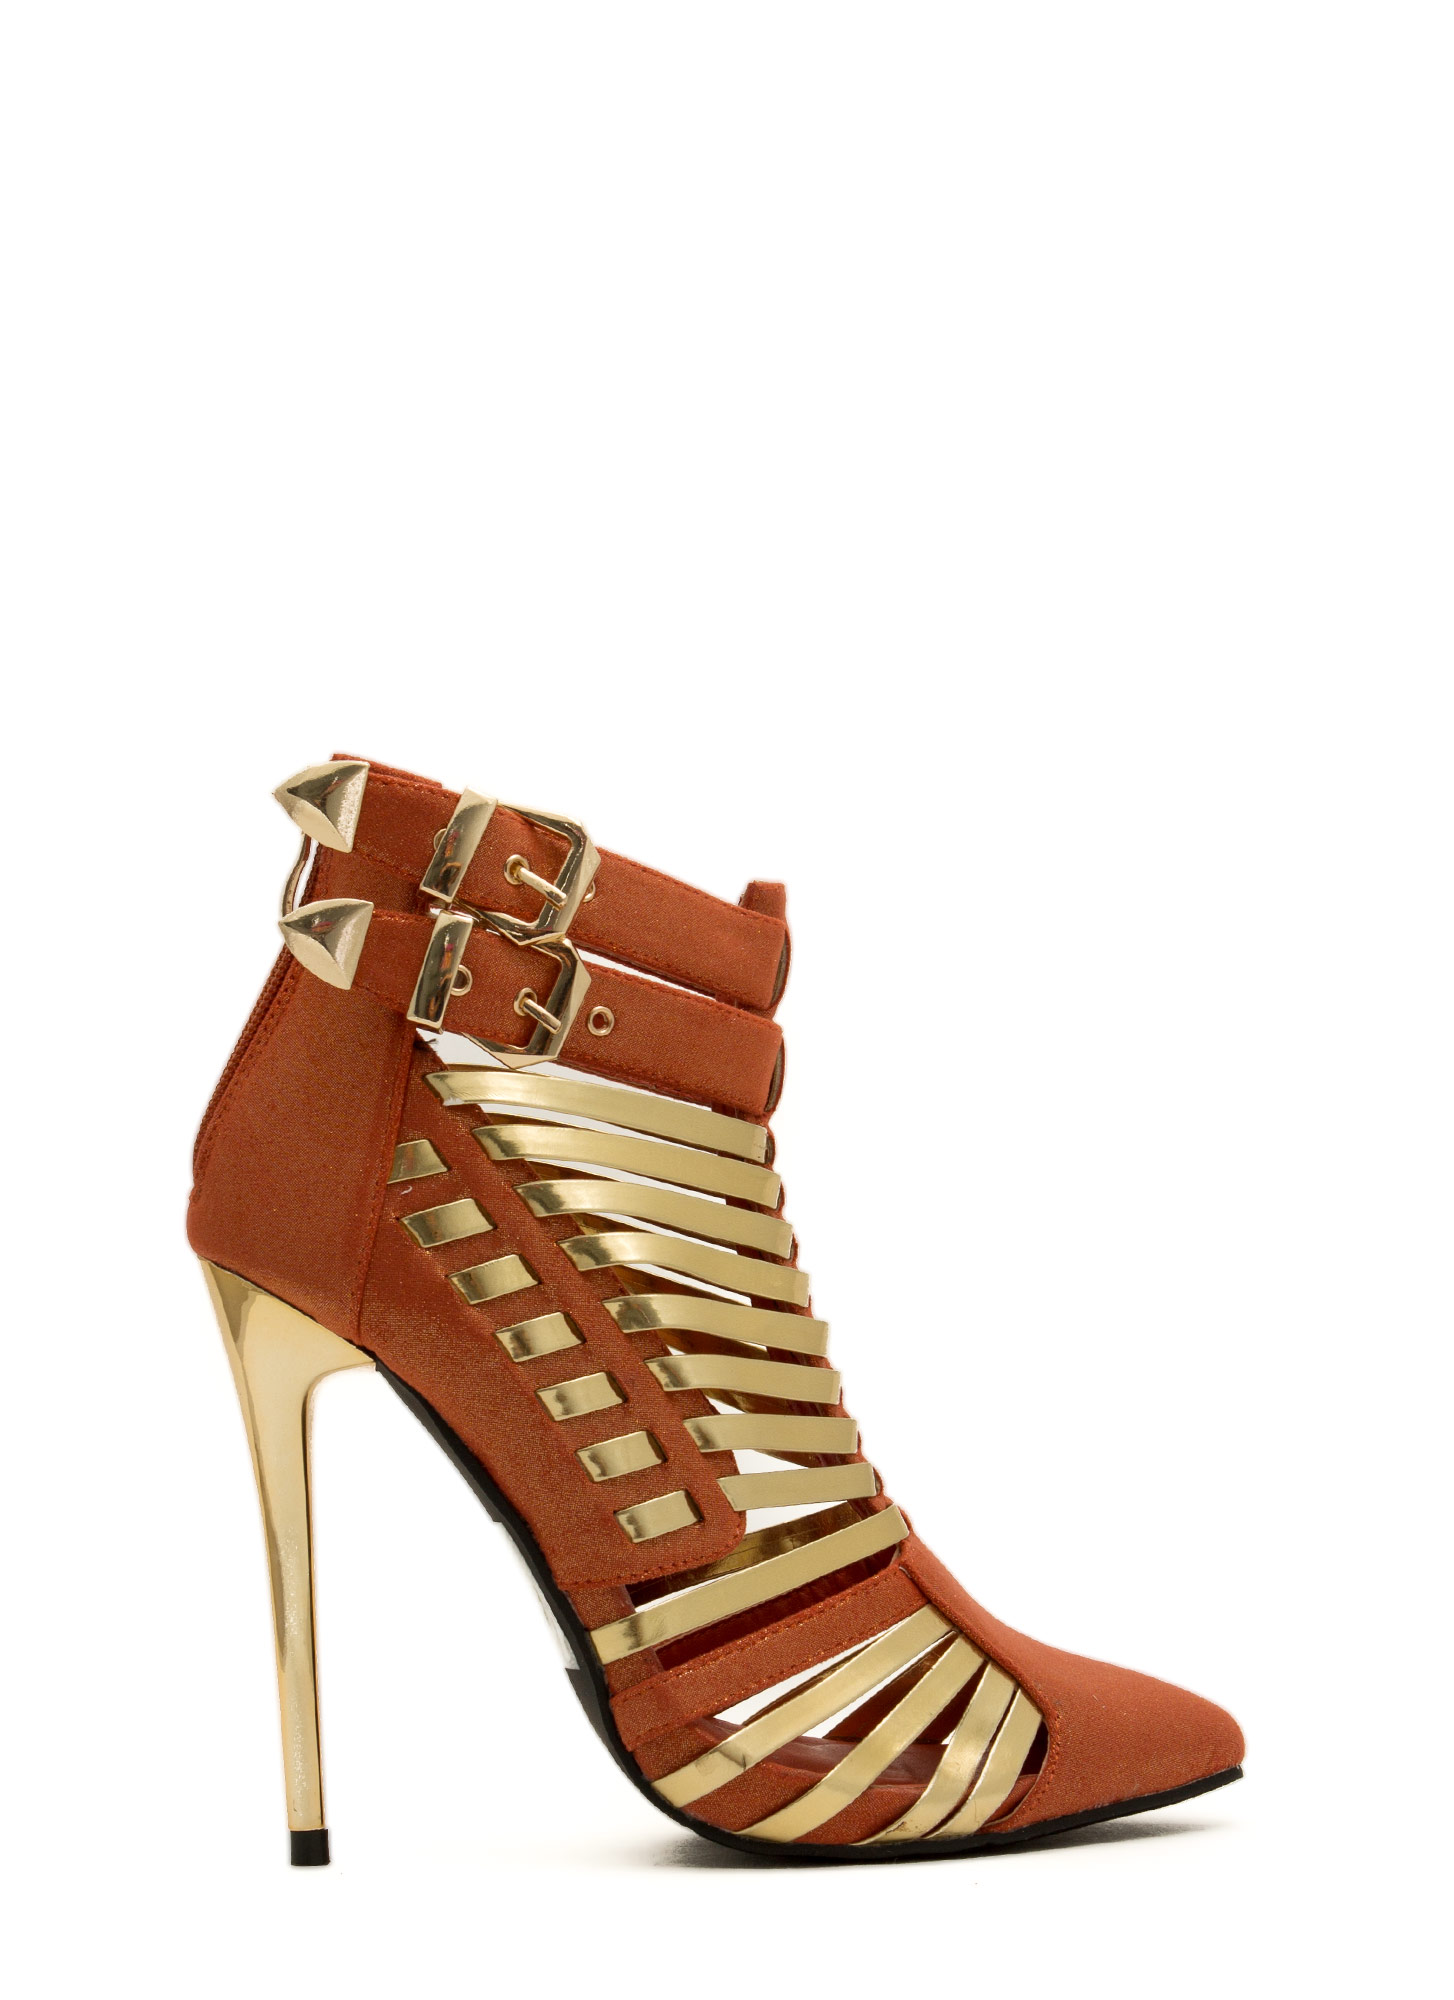 Weave It To Me Strappy Cord Booties ORANGE